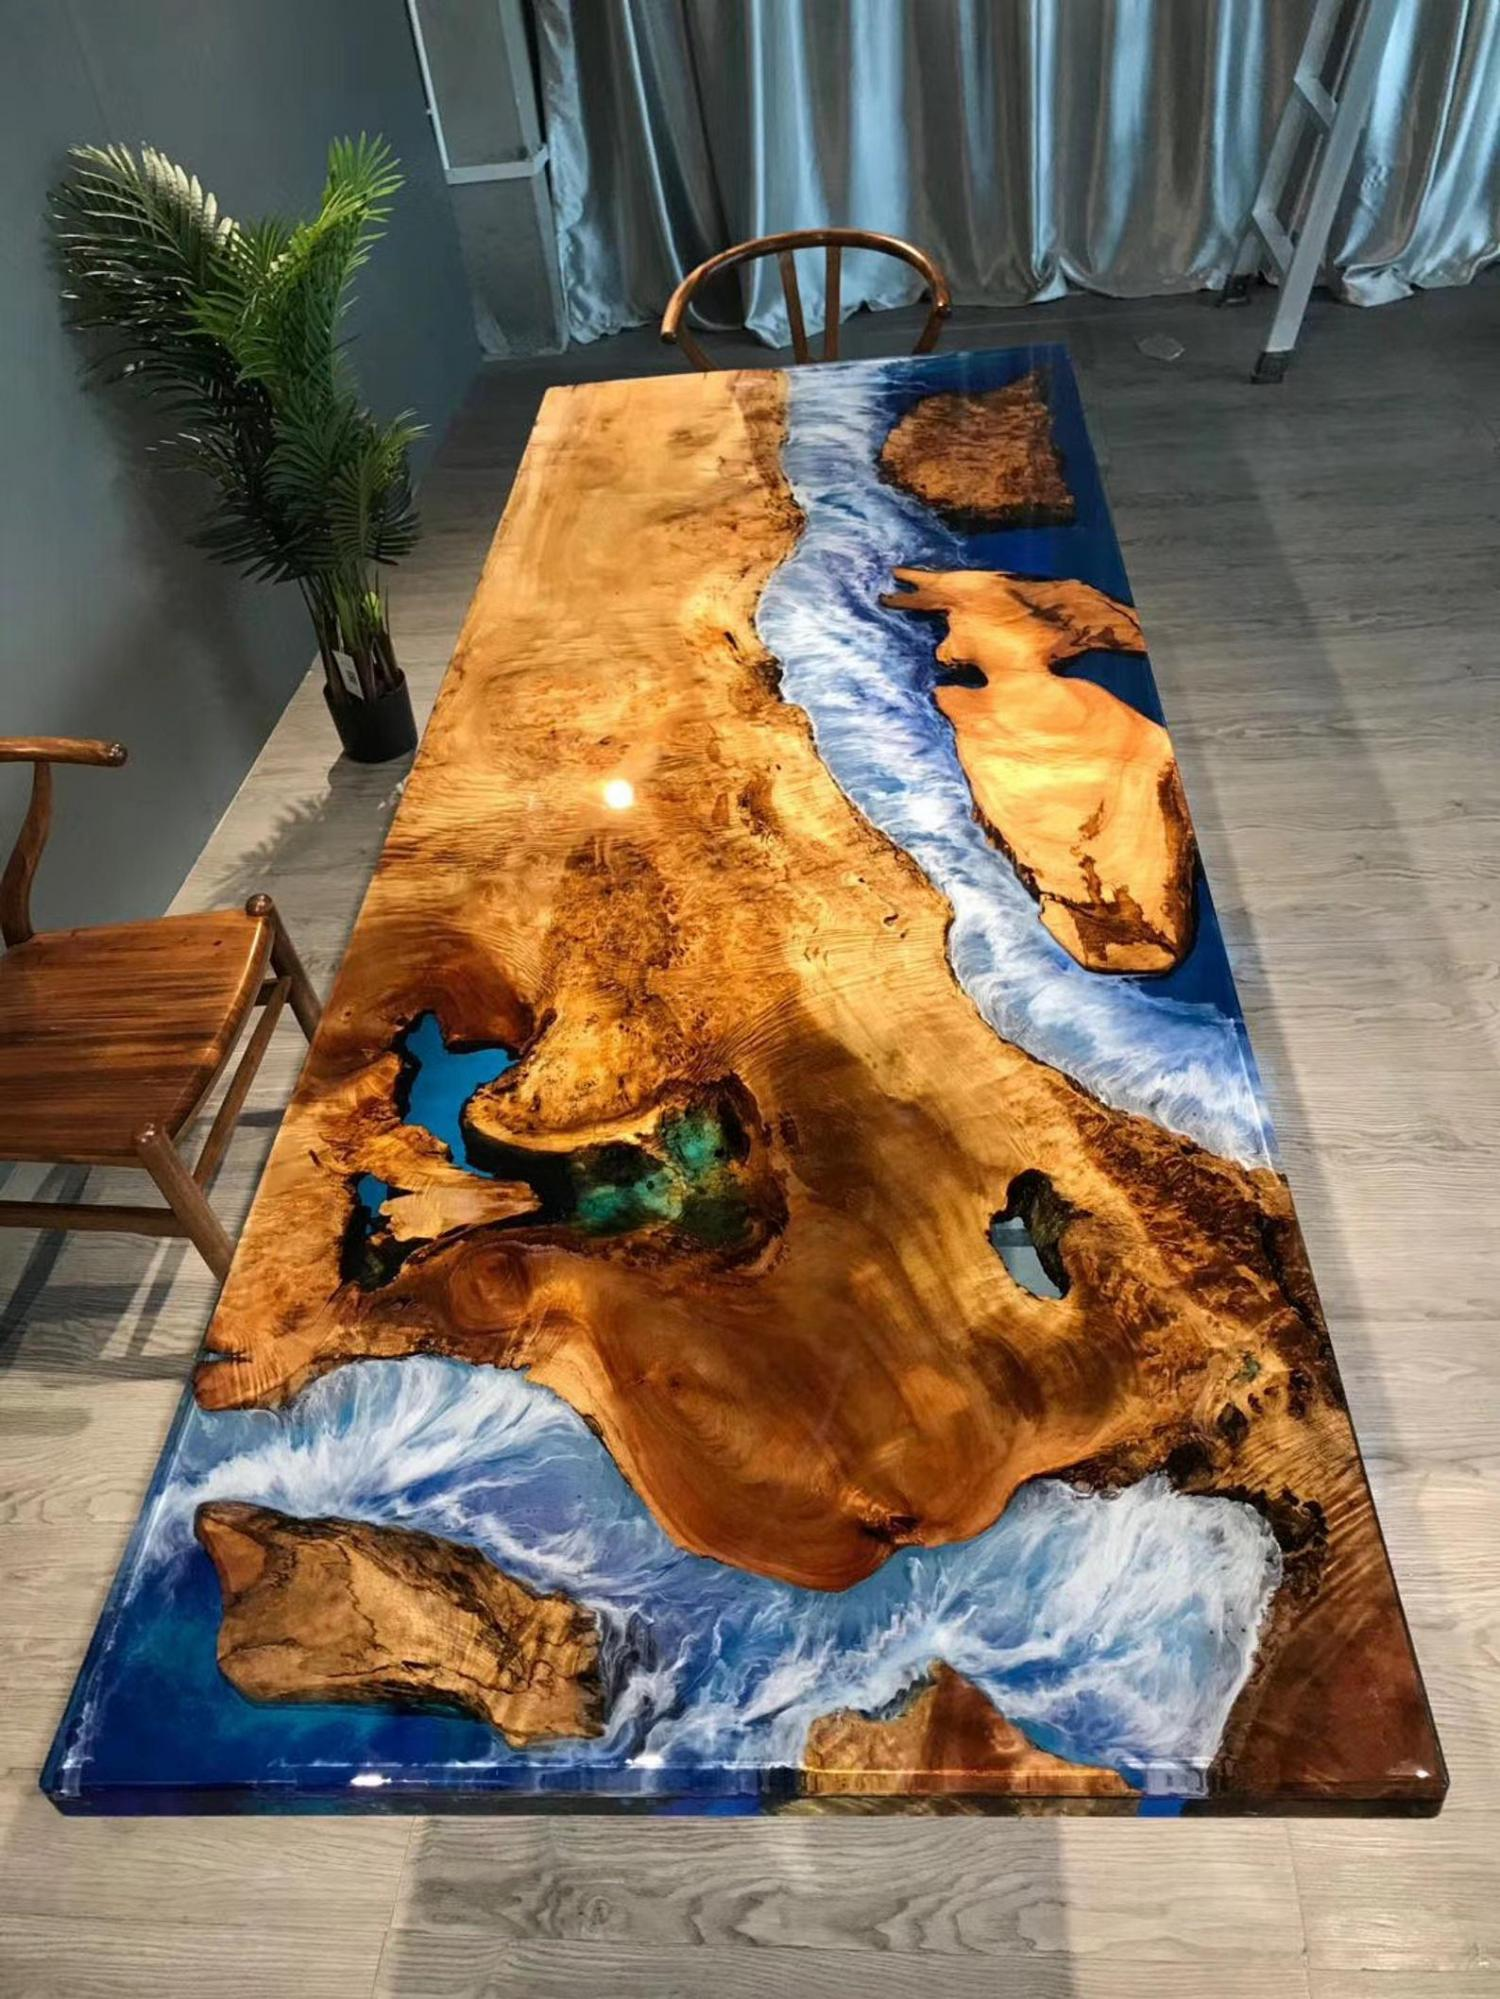 Another beautiful epoxy/resin table with bright blue waters and amazing shorelines with amazing colors